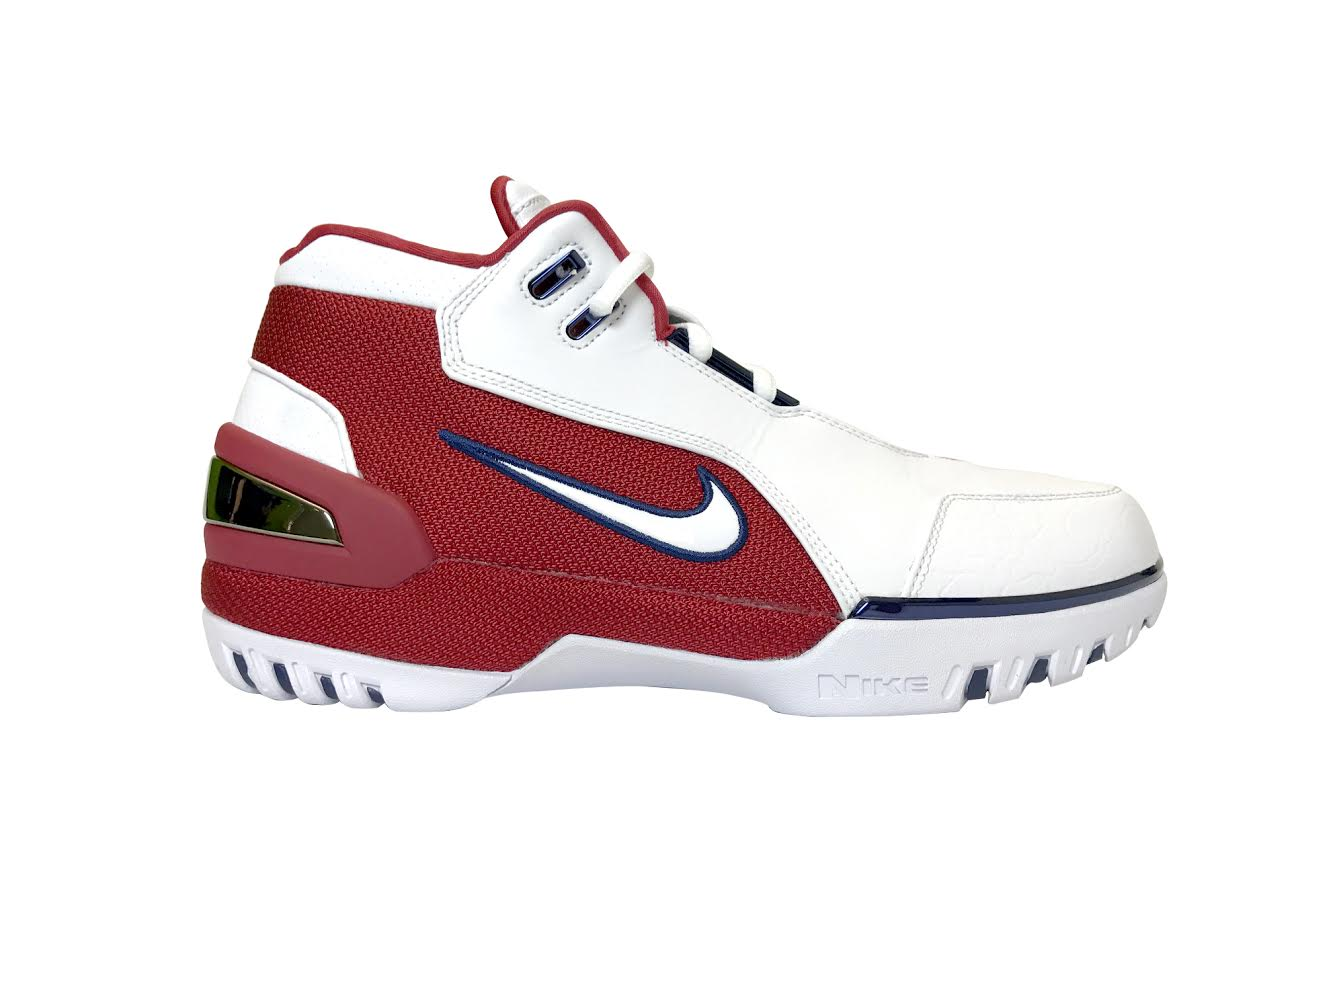 e99cde82af9e nike air zoom generation Archives - Air 23 - Air Jordan Release ...